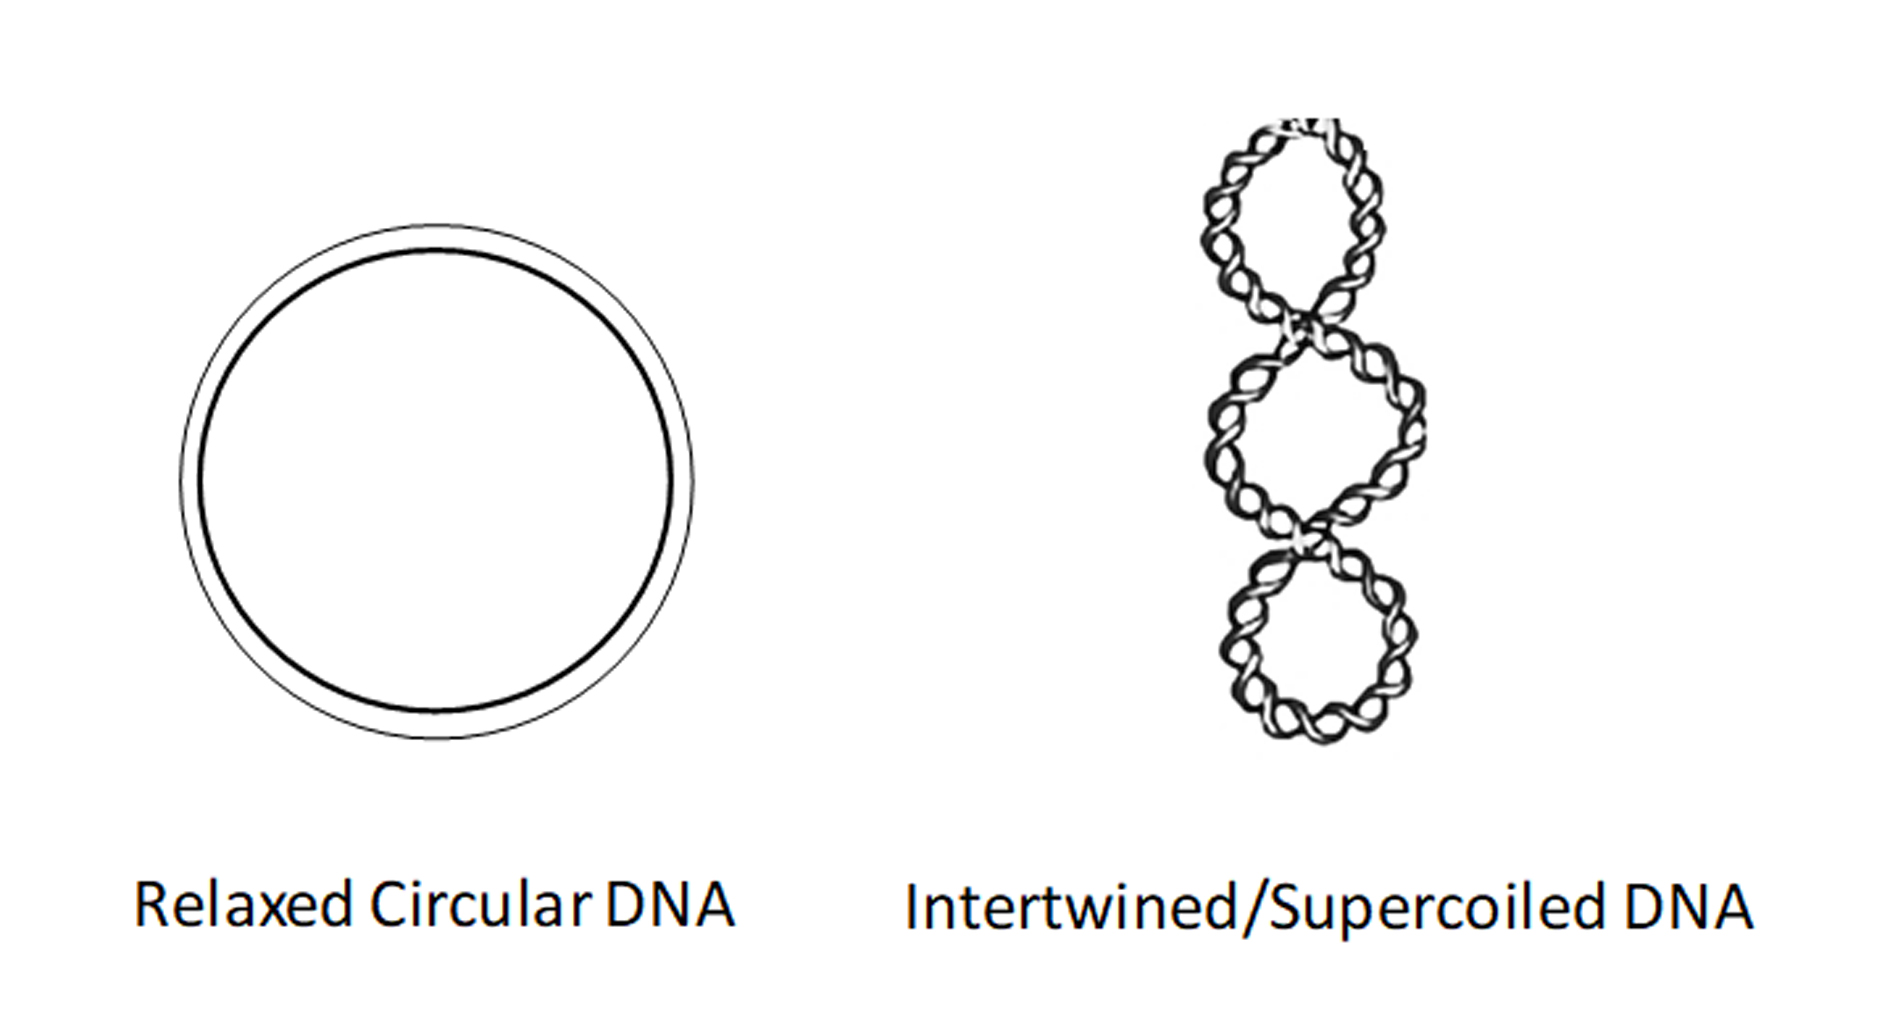 Relaxed circular or intertwined supercoiled DNA